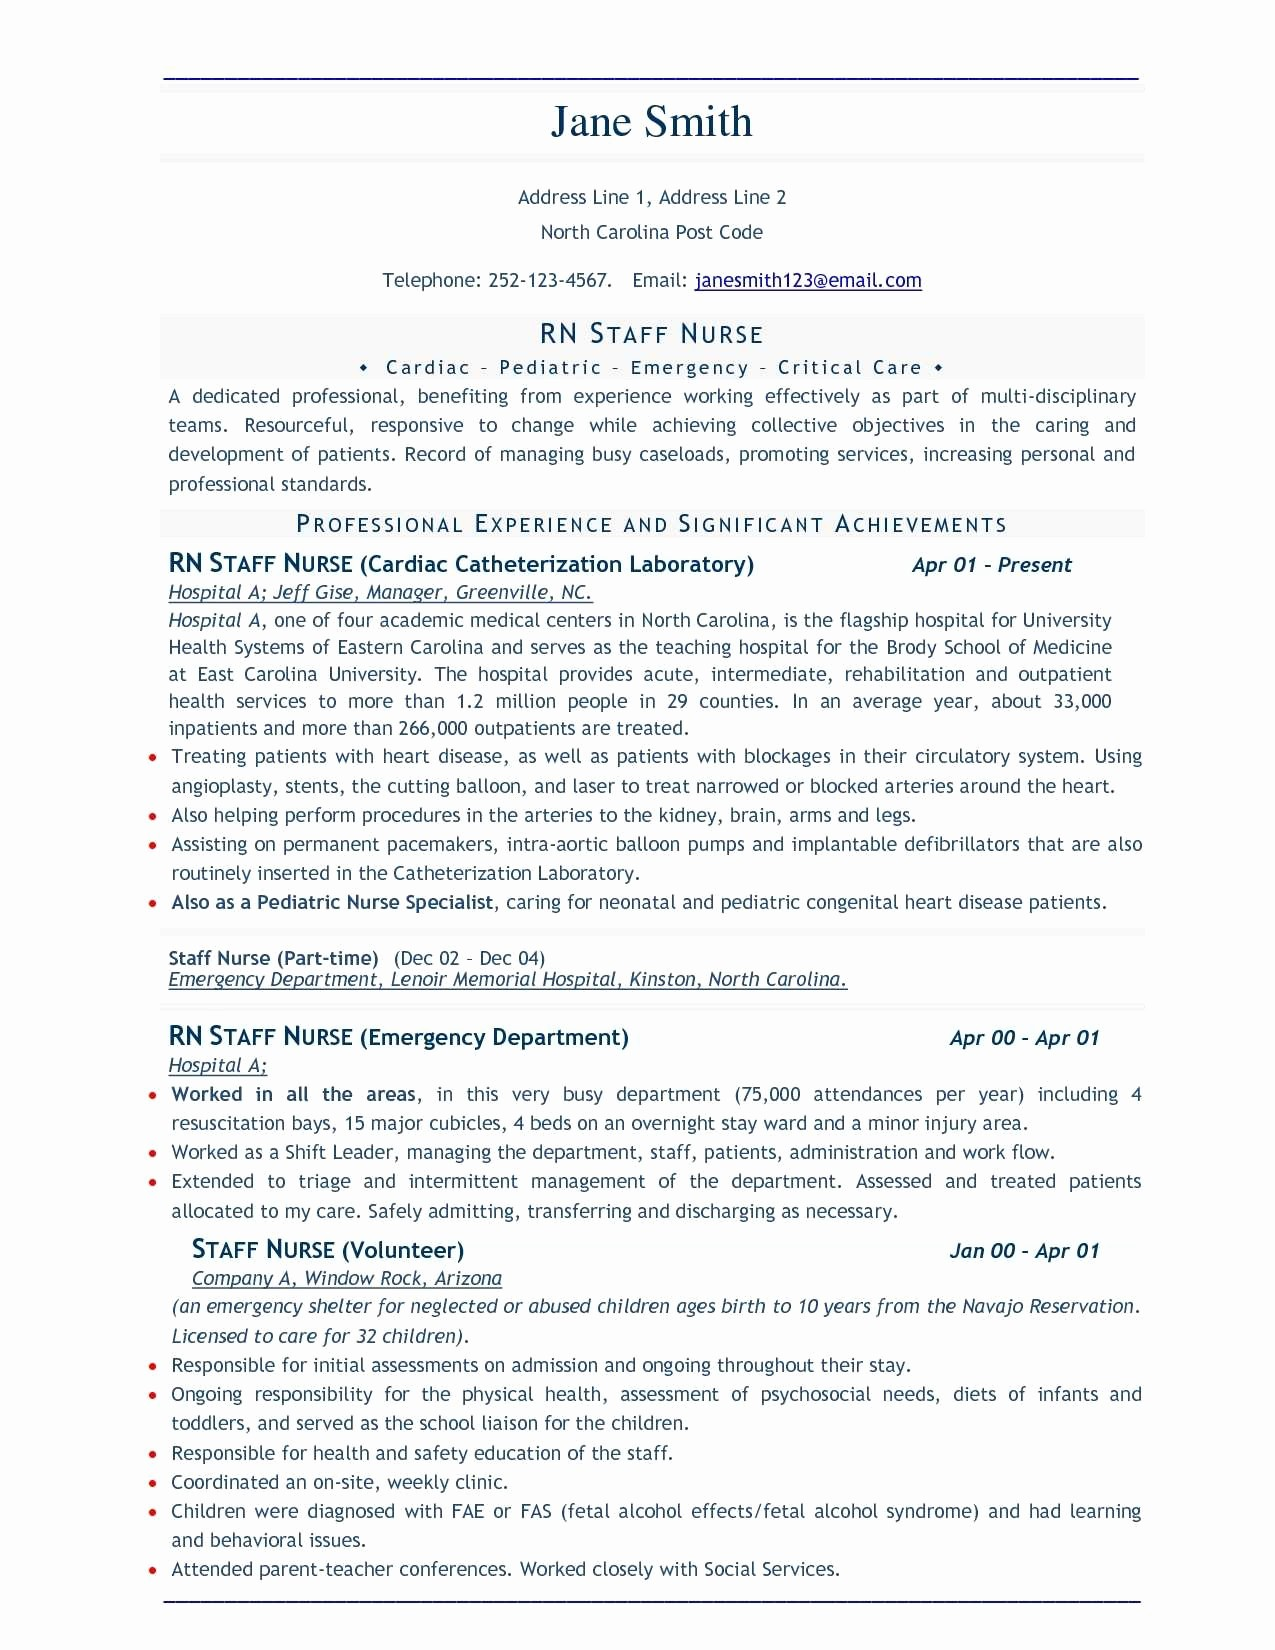 Microsoft Resume Templates Free Download Inspirational 41 Last Creative Resume Templates Free Download for